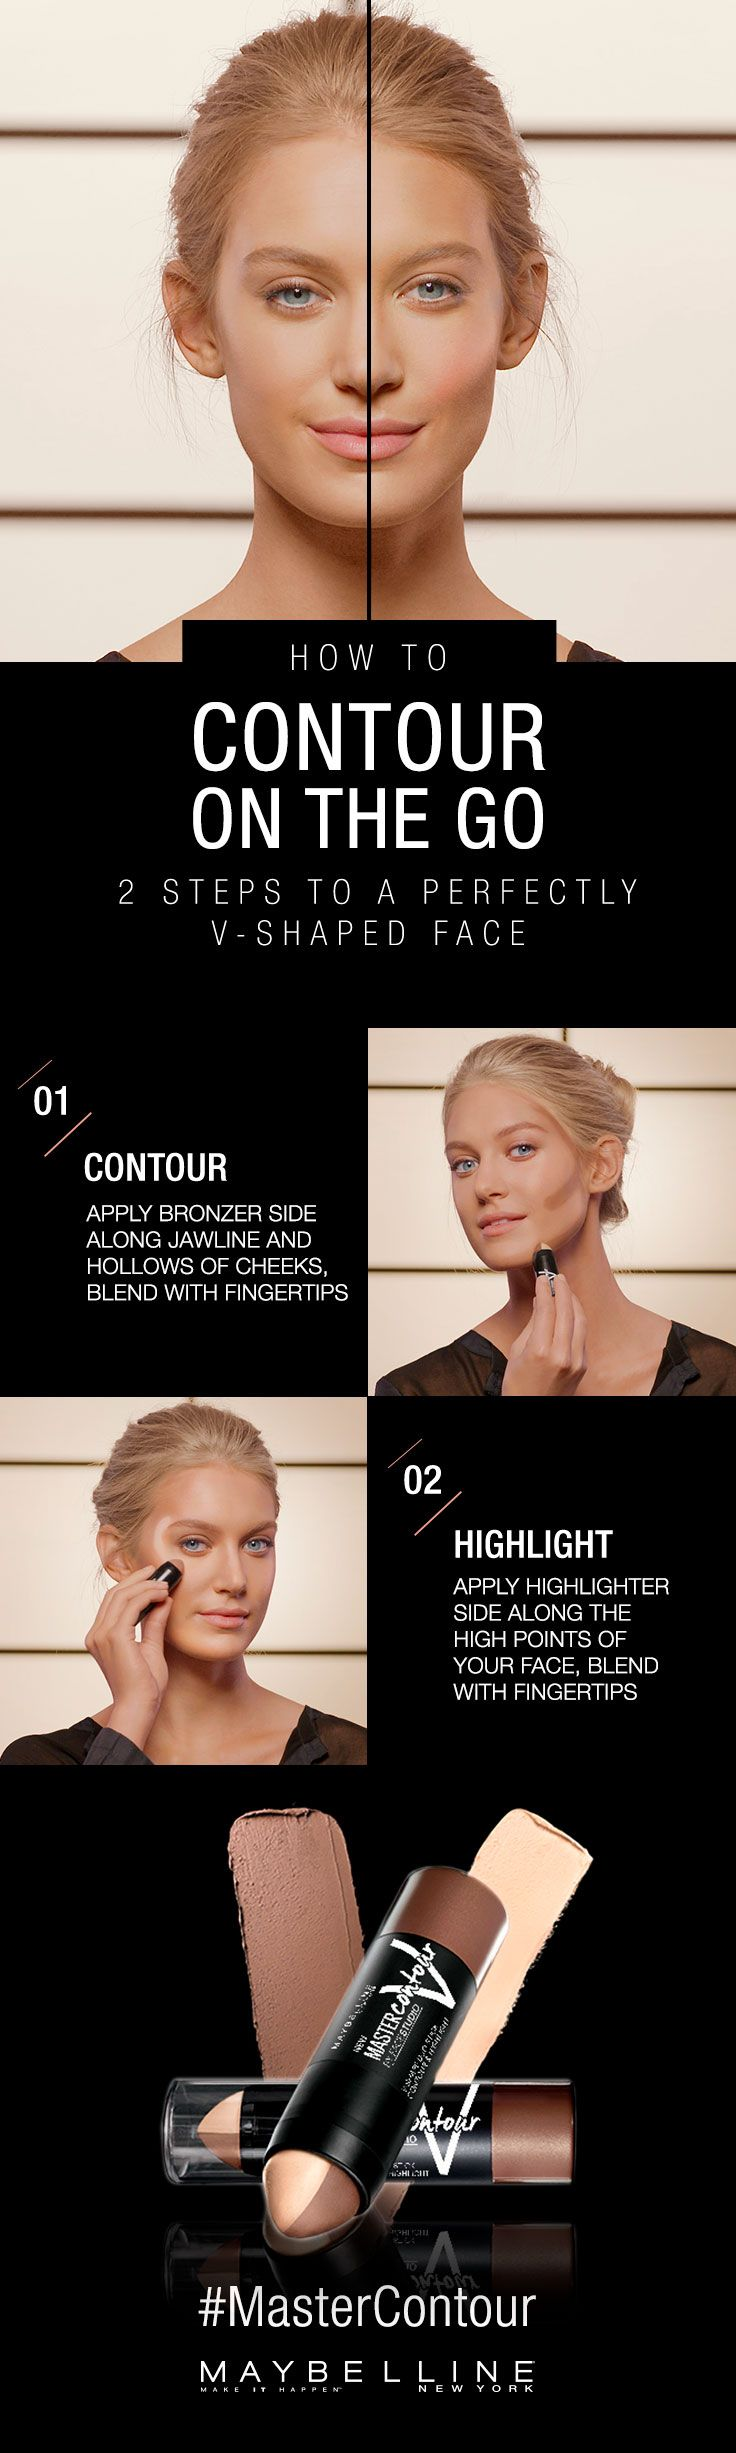 Contour on the go with Maybelline Master Contour V-Shape Duo Stick. Master the perfect v-shaped face with our easy to use contouring and highlighting duo. In two easy steps create the illusion of structure and lift. Click through for more how to`s to create the any look on the go.